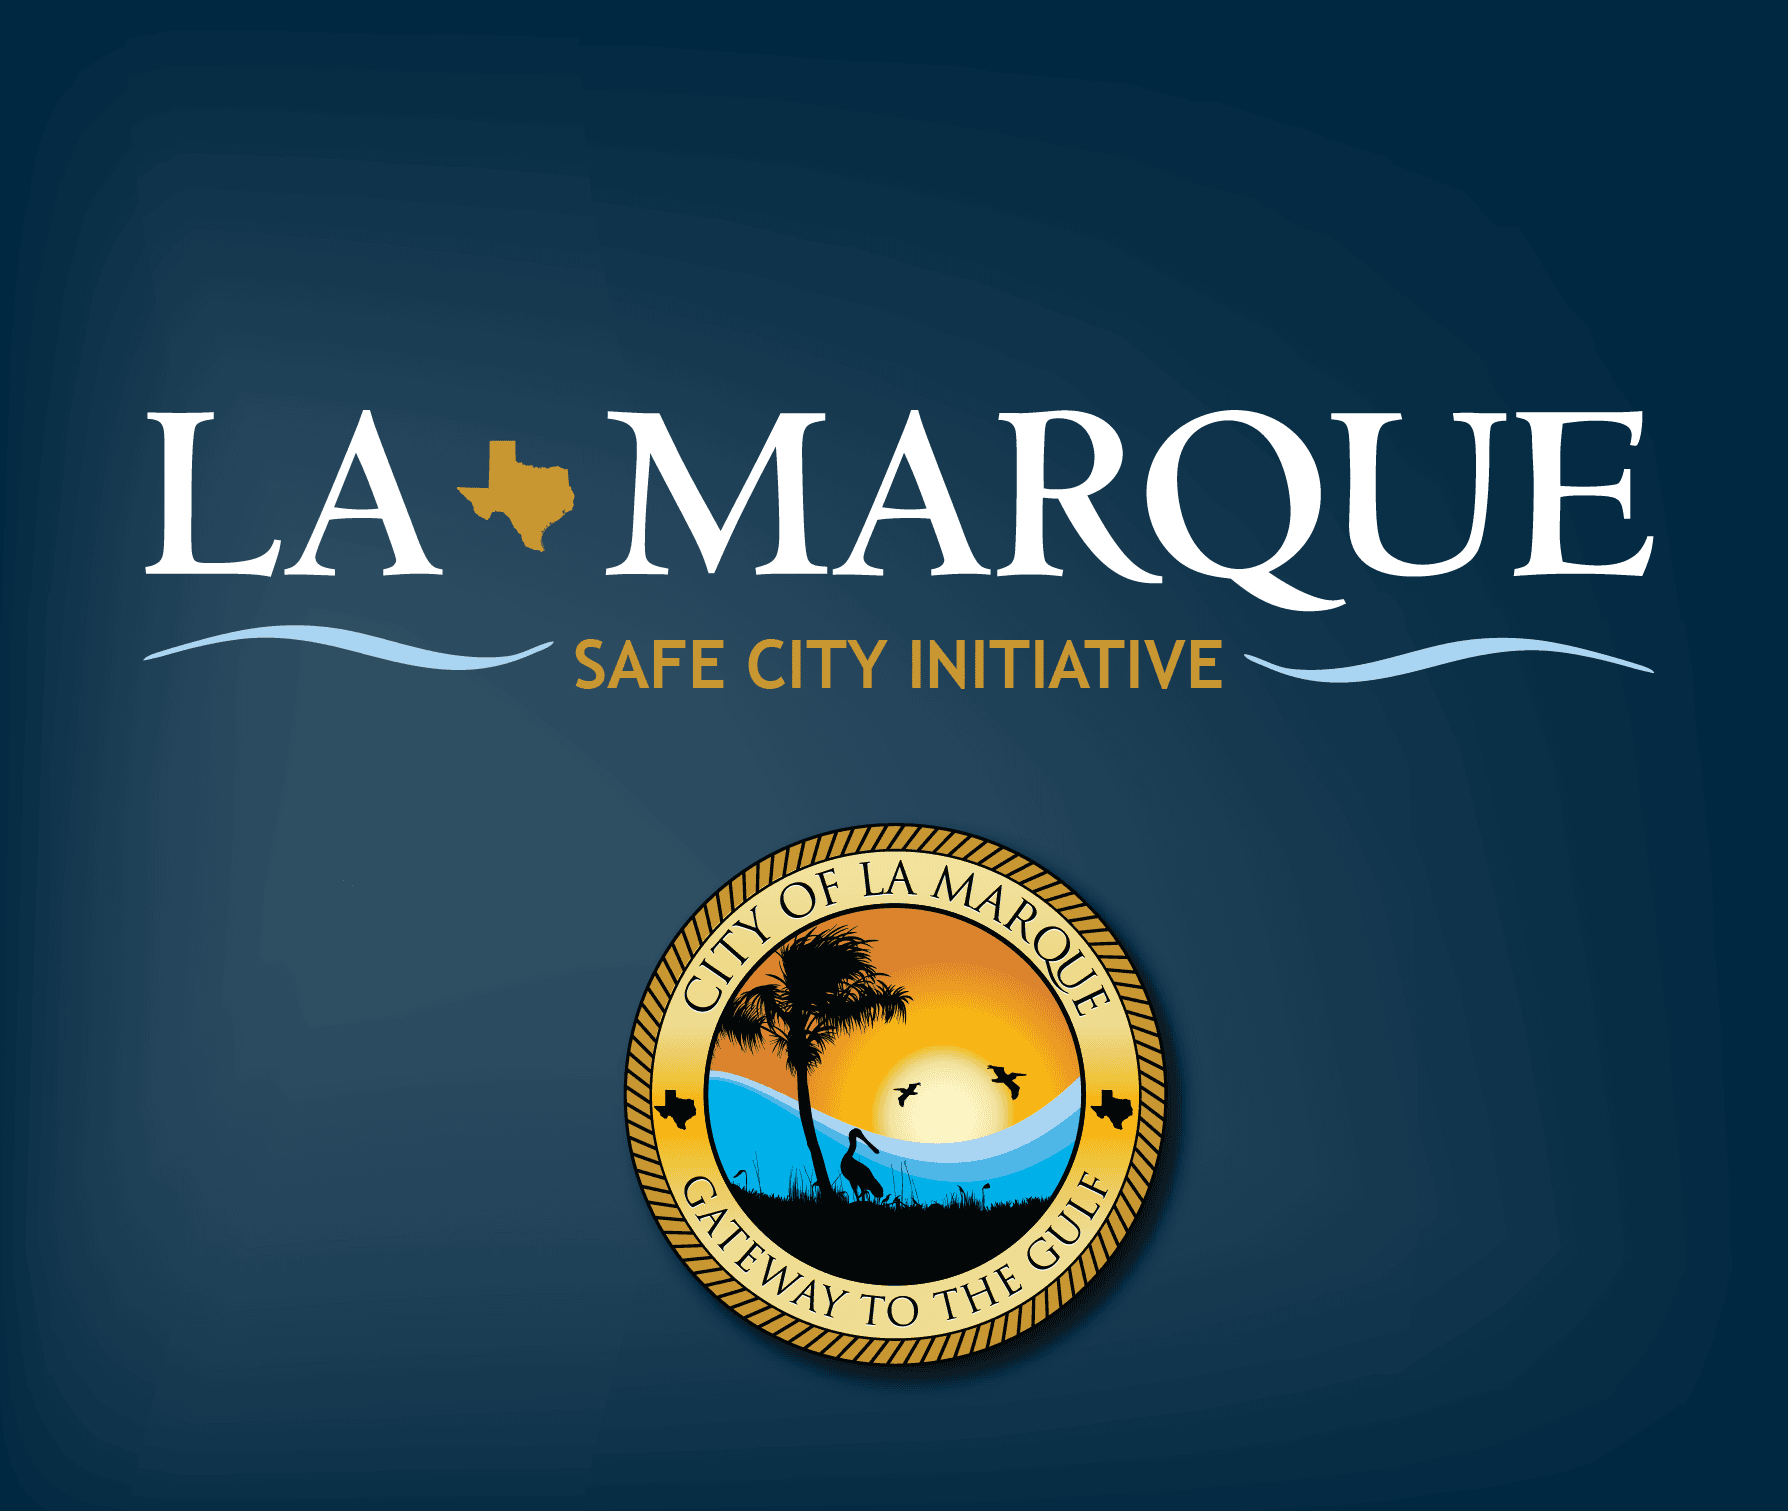 Safe City graphic with city logo